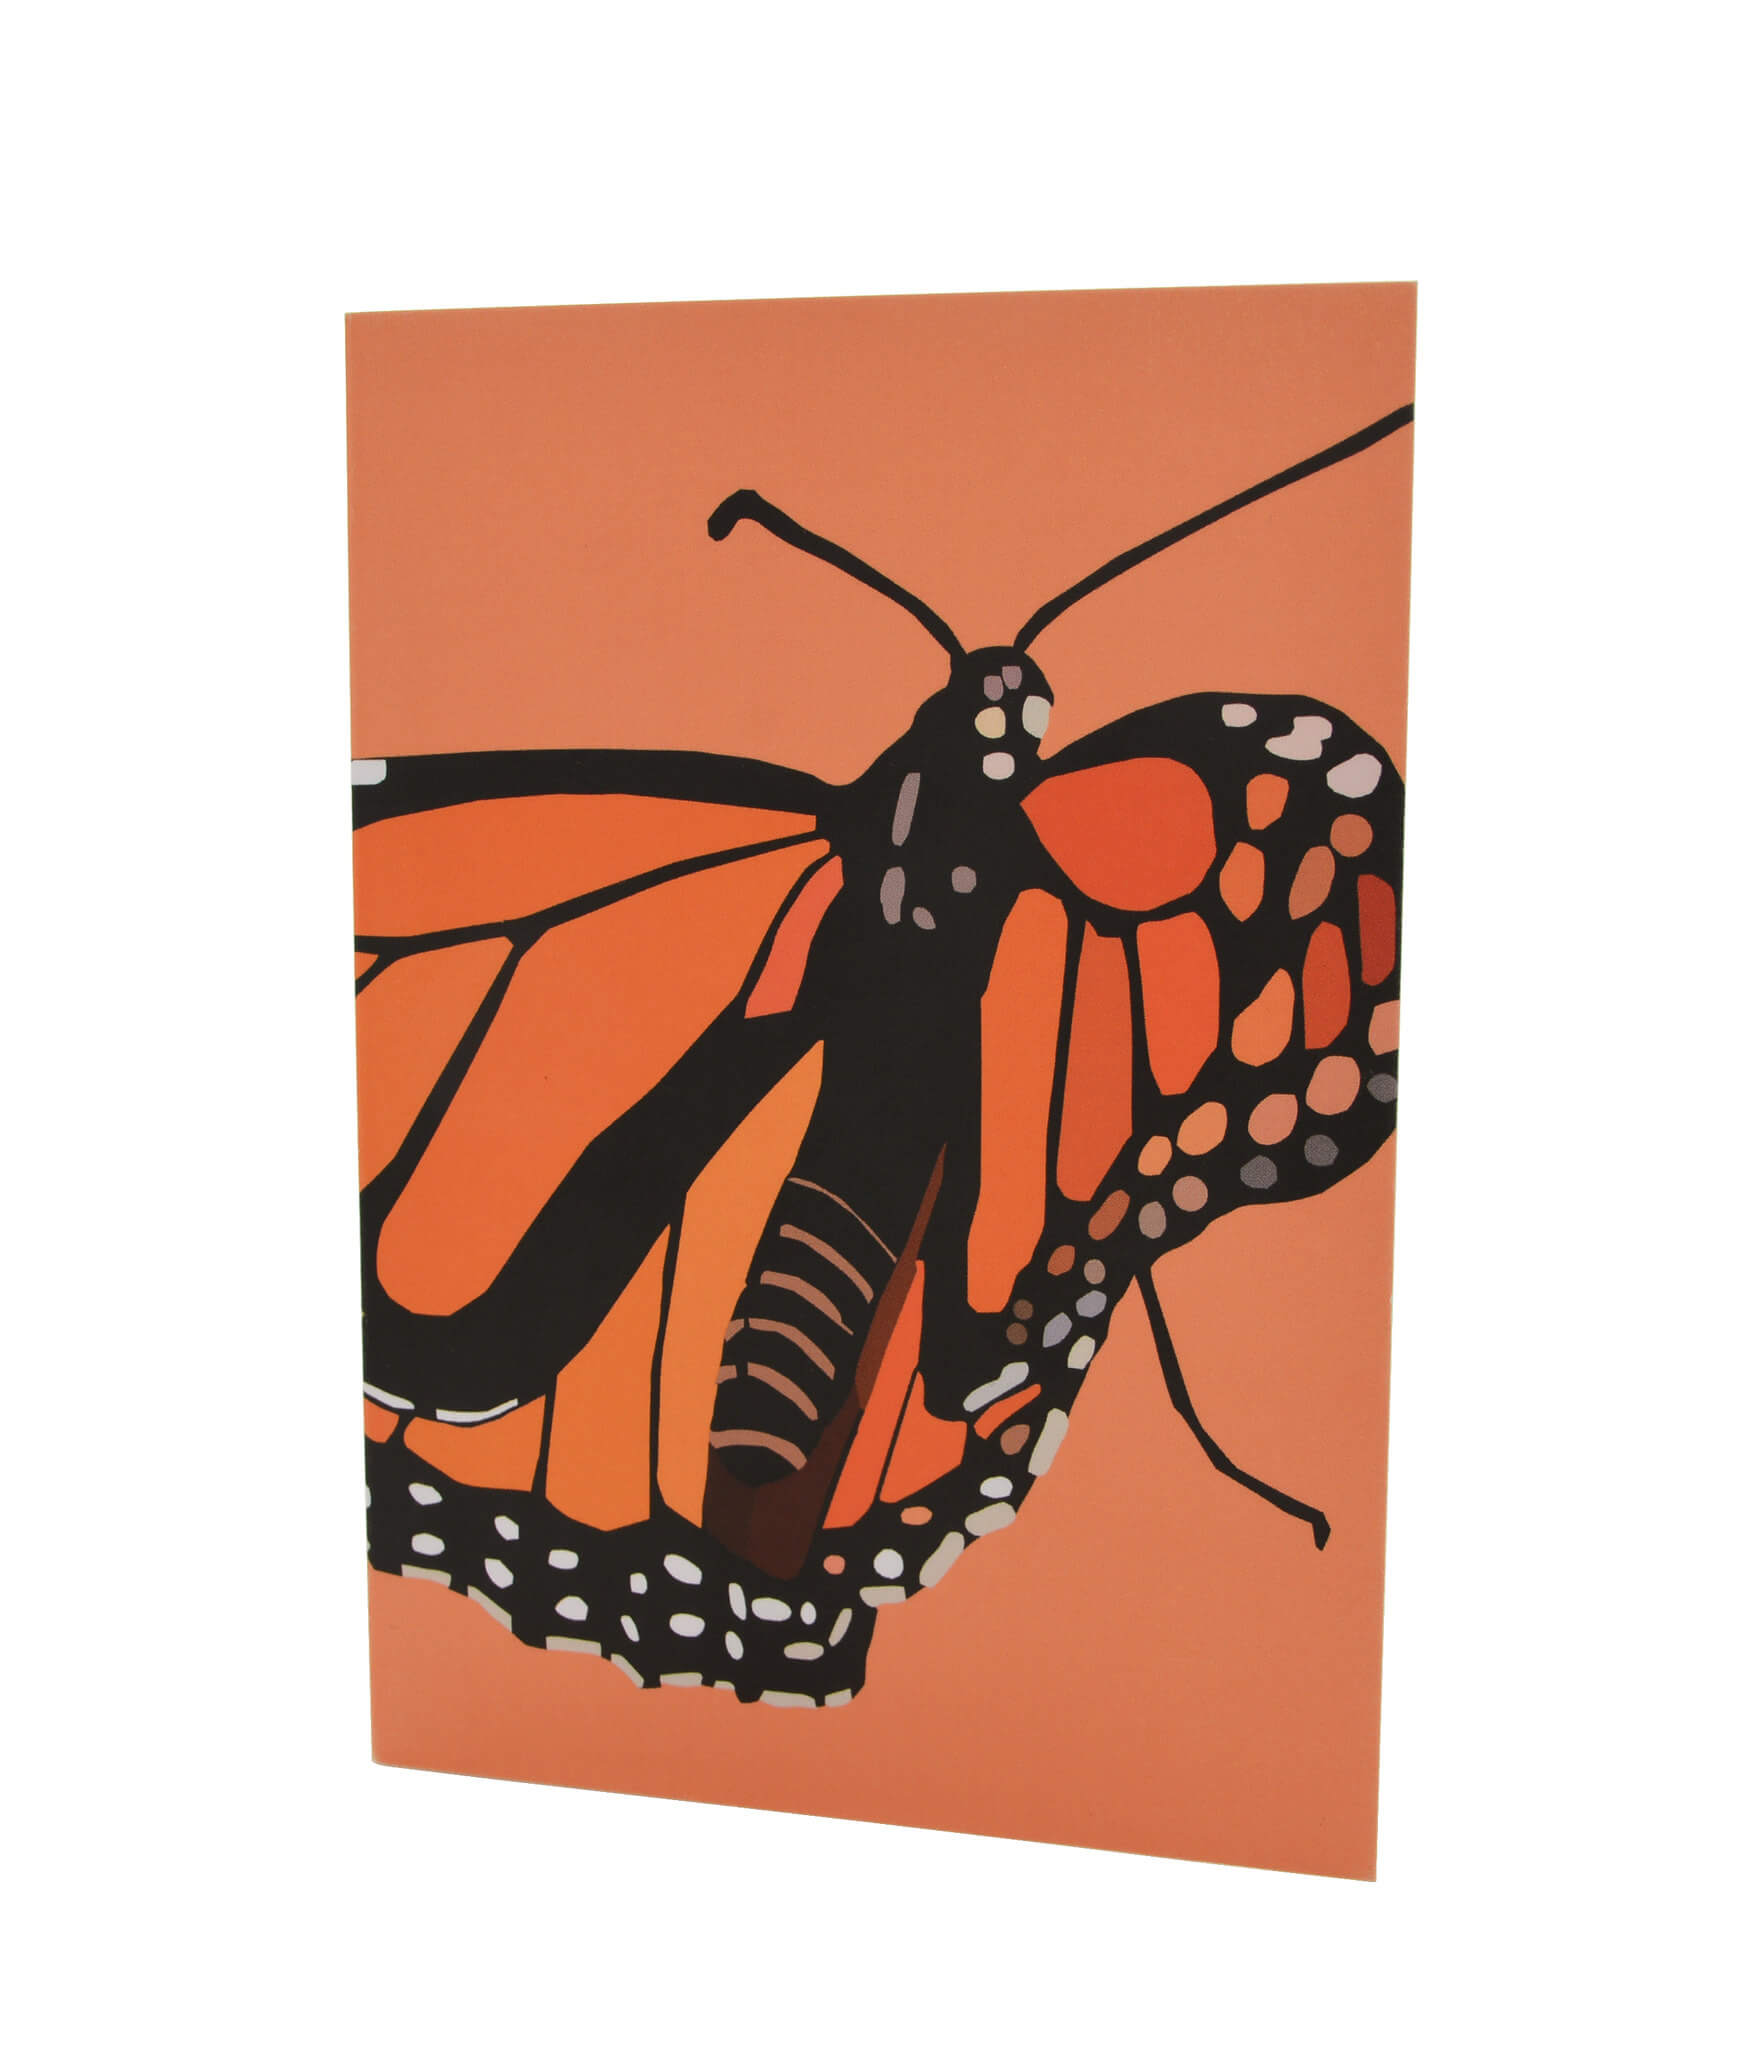 Greeting Card - Monarch butterfly 1